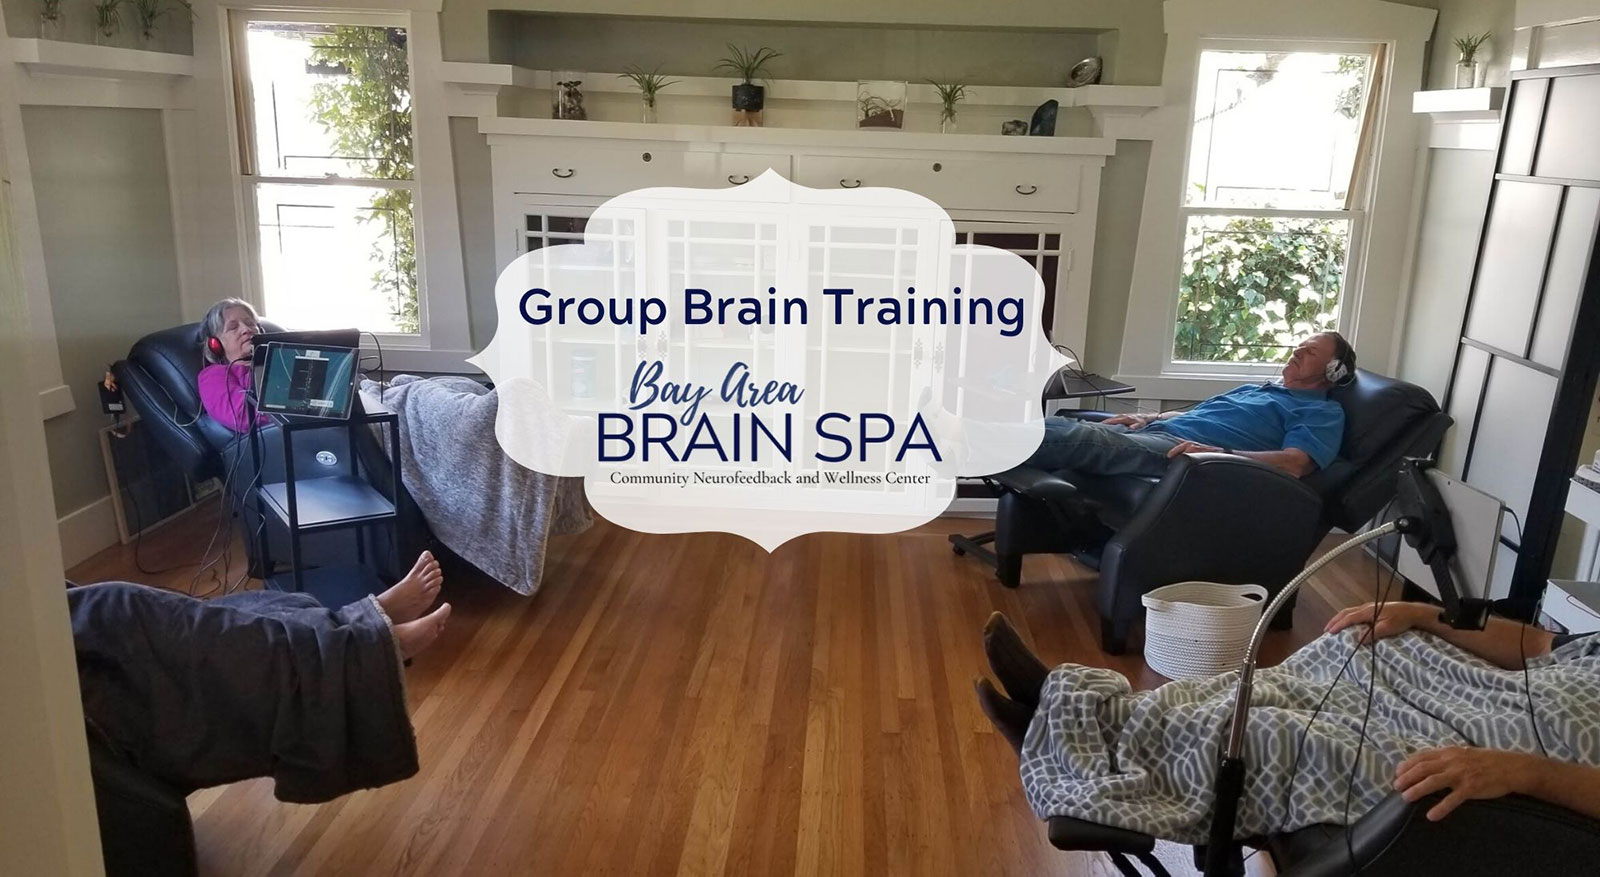 Group Brain Training